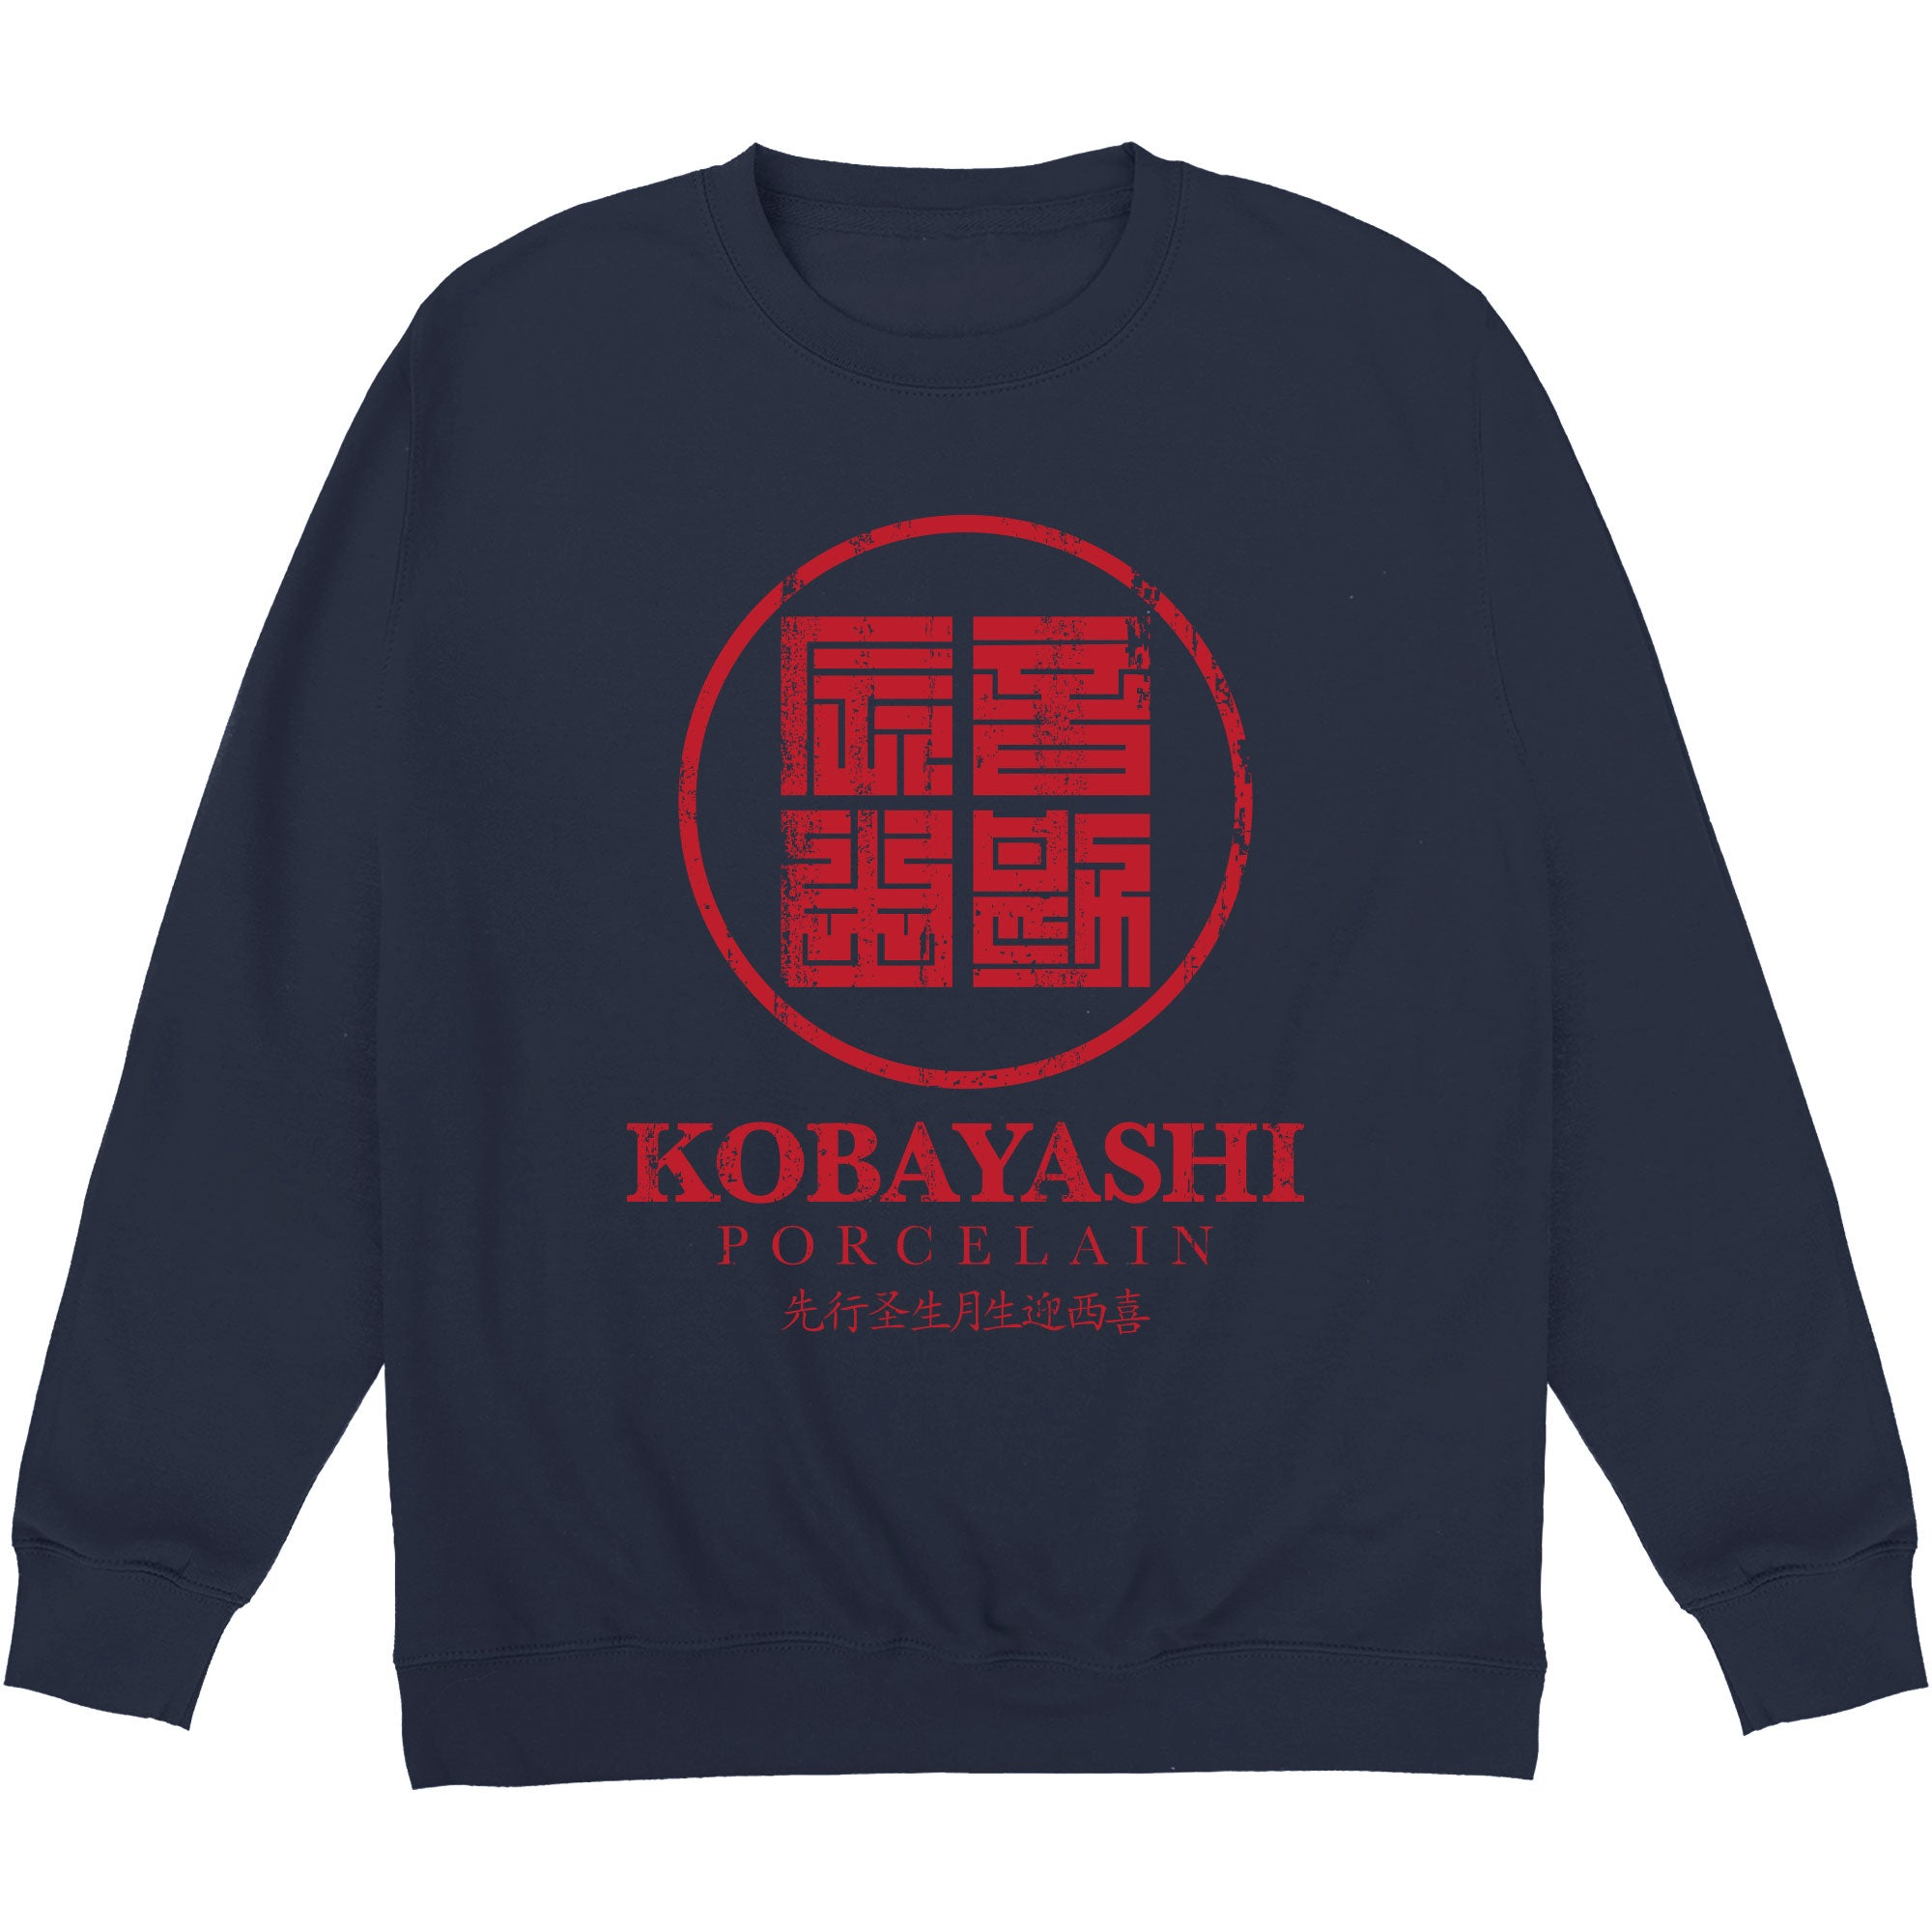 CHEAP Inspired By The Usual Suspects – Kobayashi Porcelain Crewneck Sweatshirt 24322676835 – Clothing Accessories